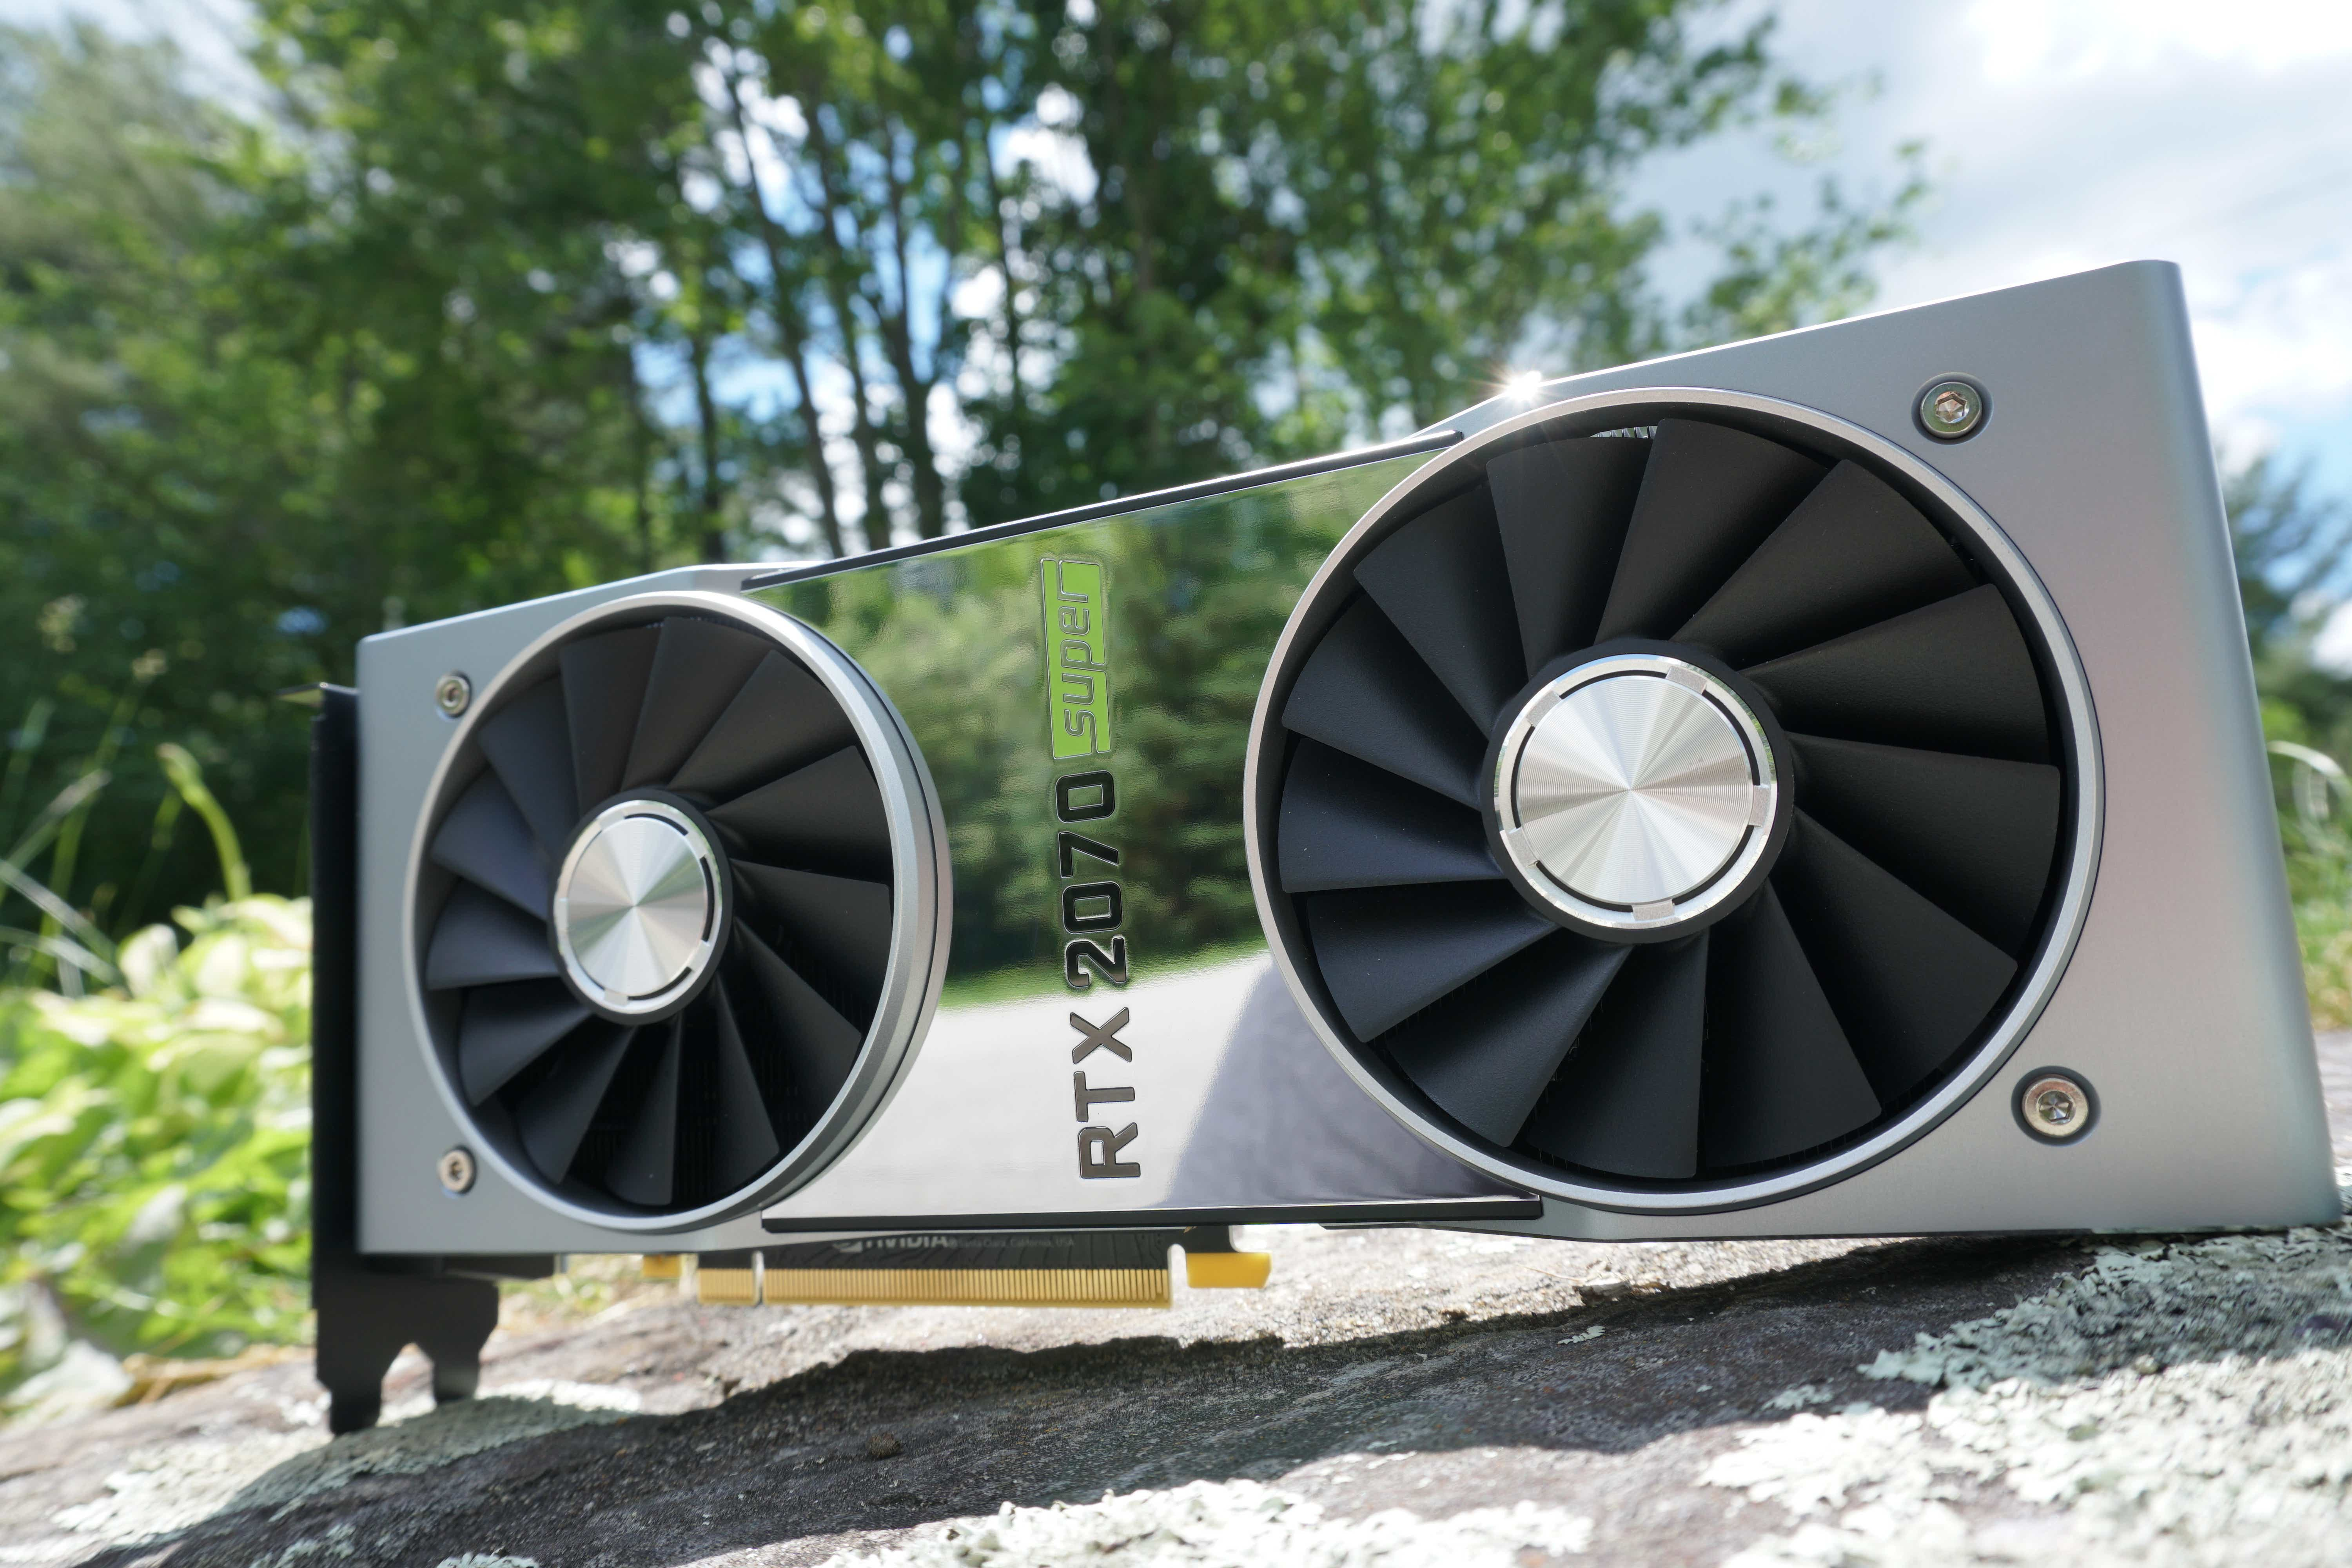 GeForce RTX 2070 Super Founders Edition